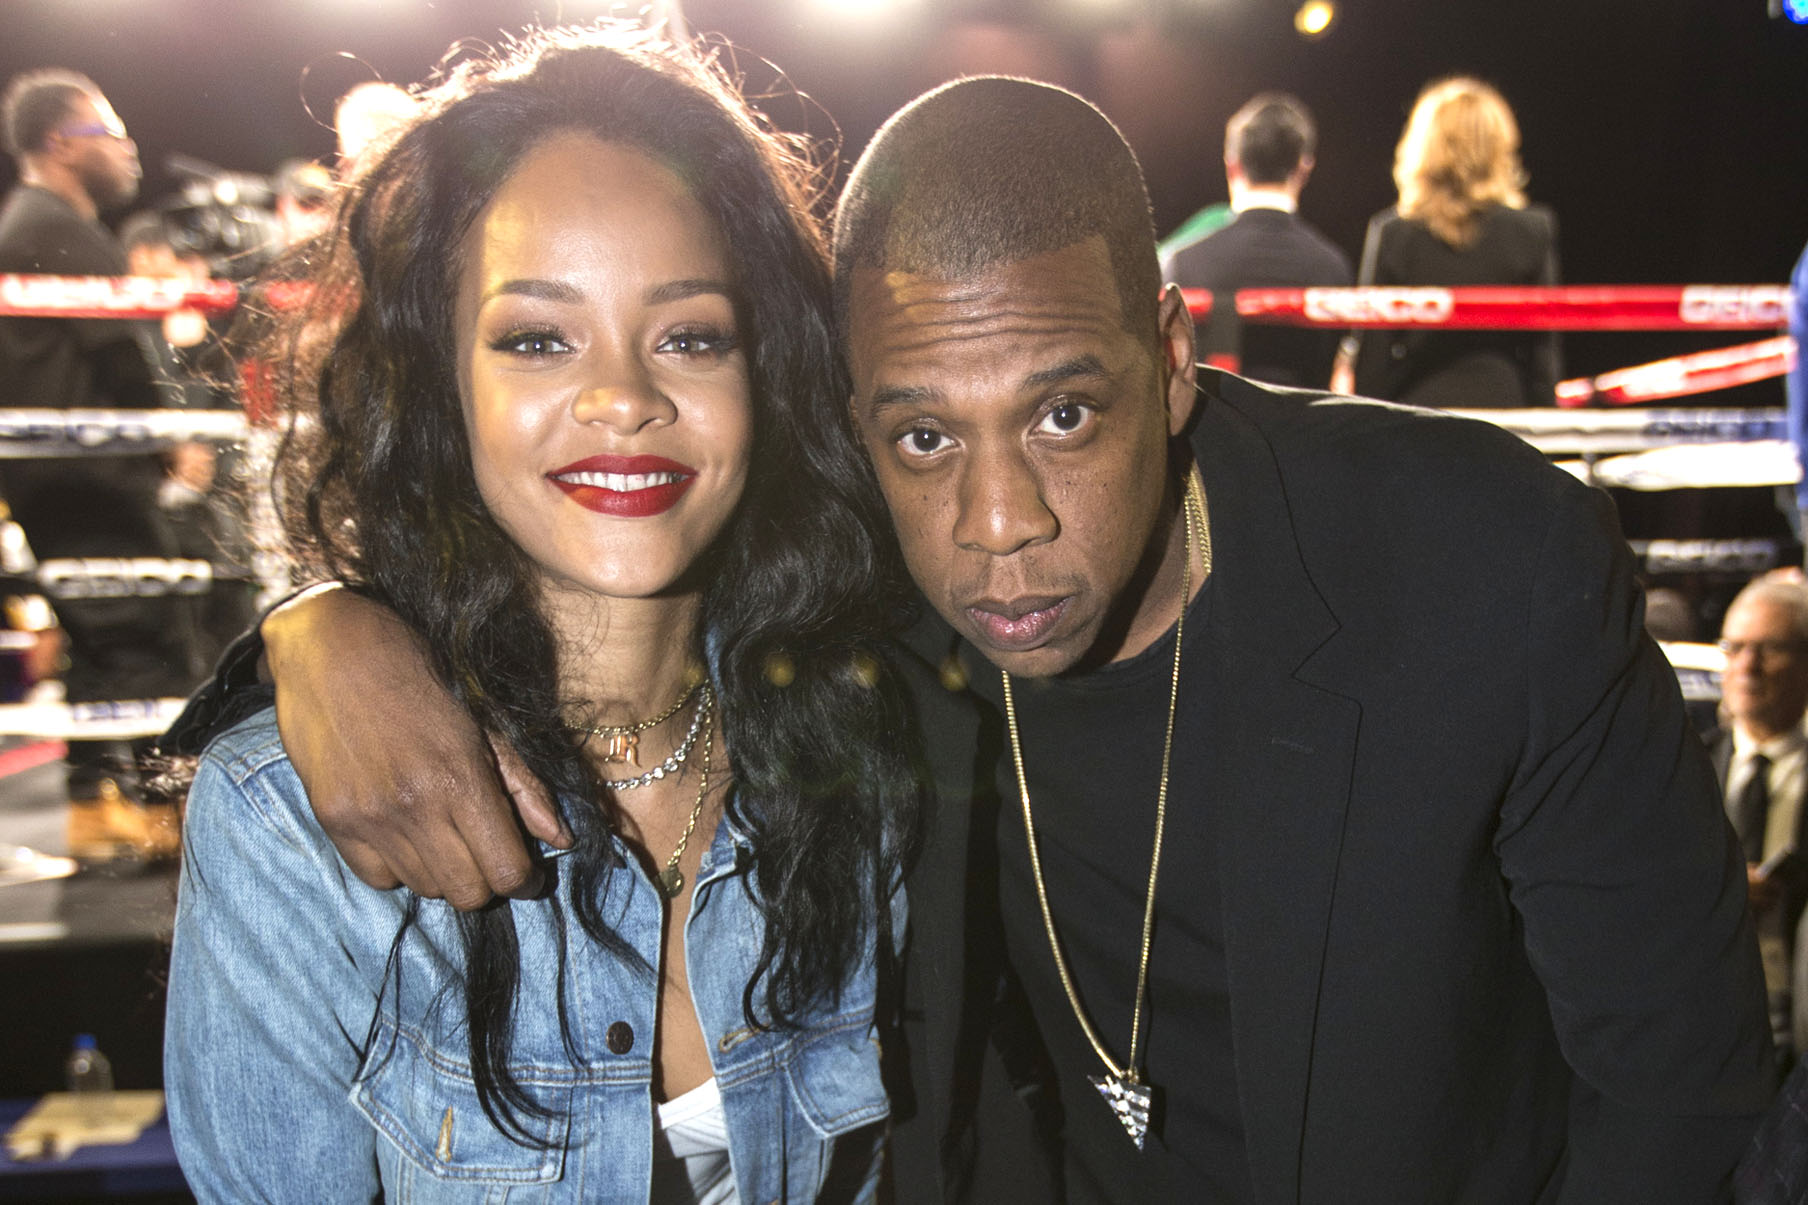 http://www.eurweb.com/wp-content/uploads/2015/10/jay-z-and-rihanna.jpg